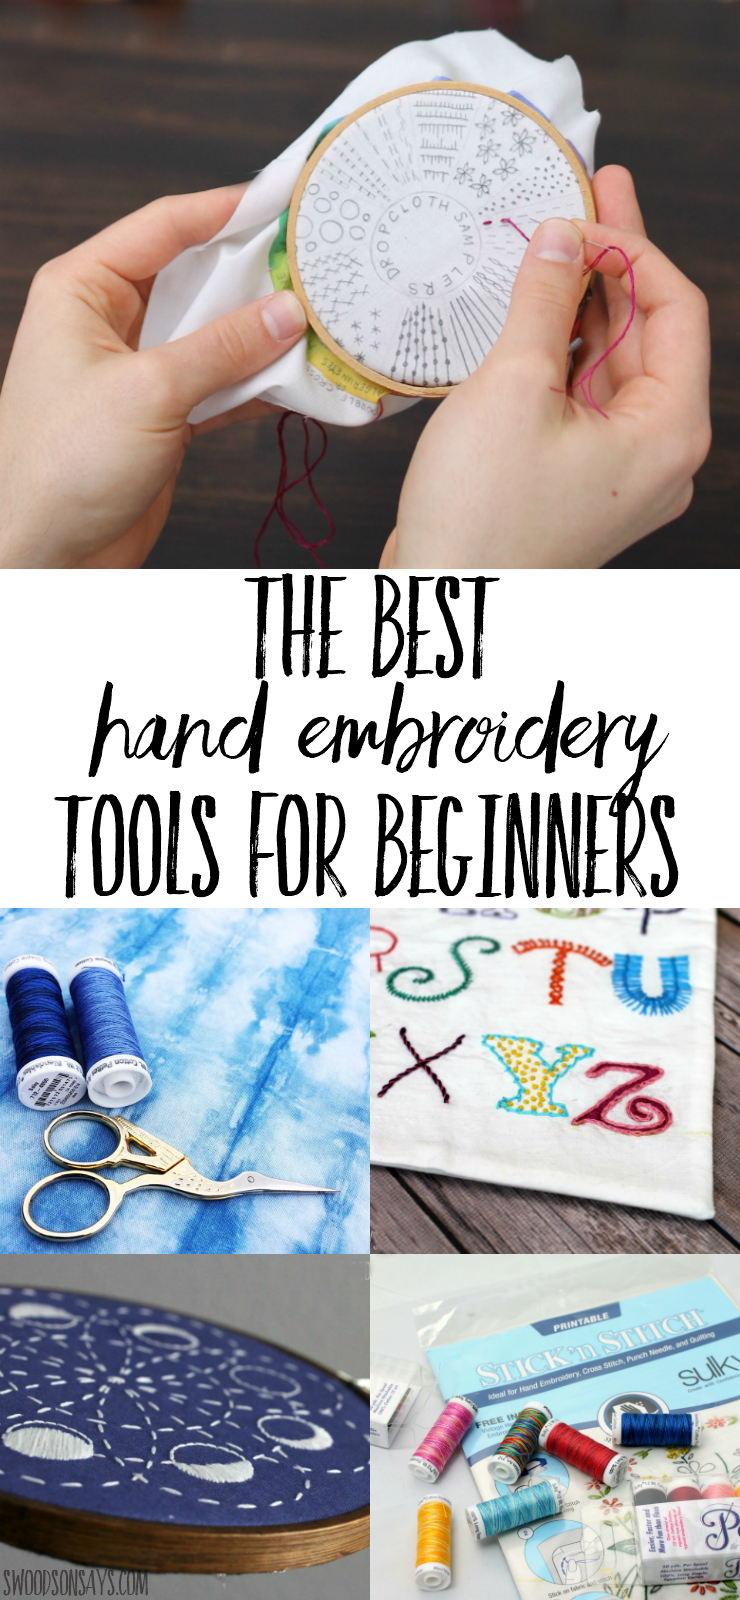 Overwhelmed with what to buy when learning how to embroider? Check out this list of best hand embroidery tools! What you need vs. what's nice to have, this list will have you ready to start embroidering! #embroidery #handsewing